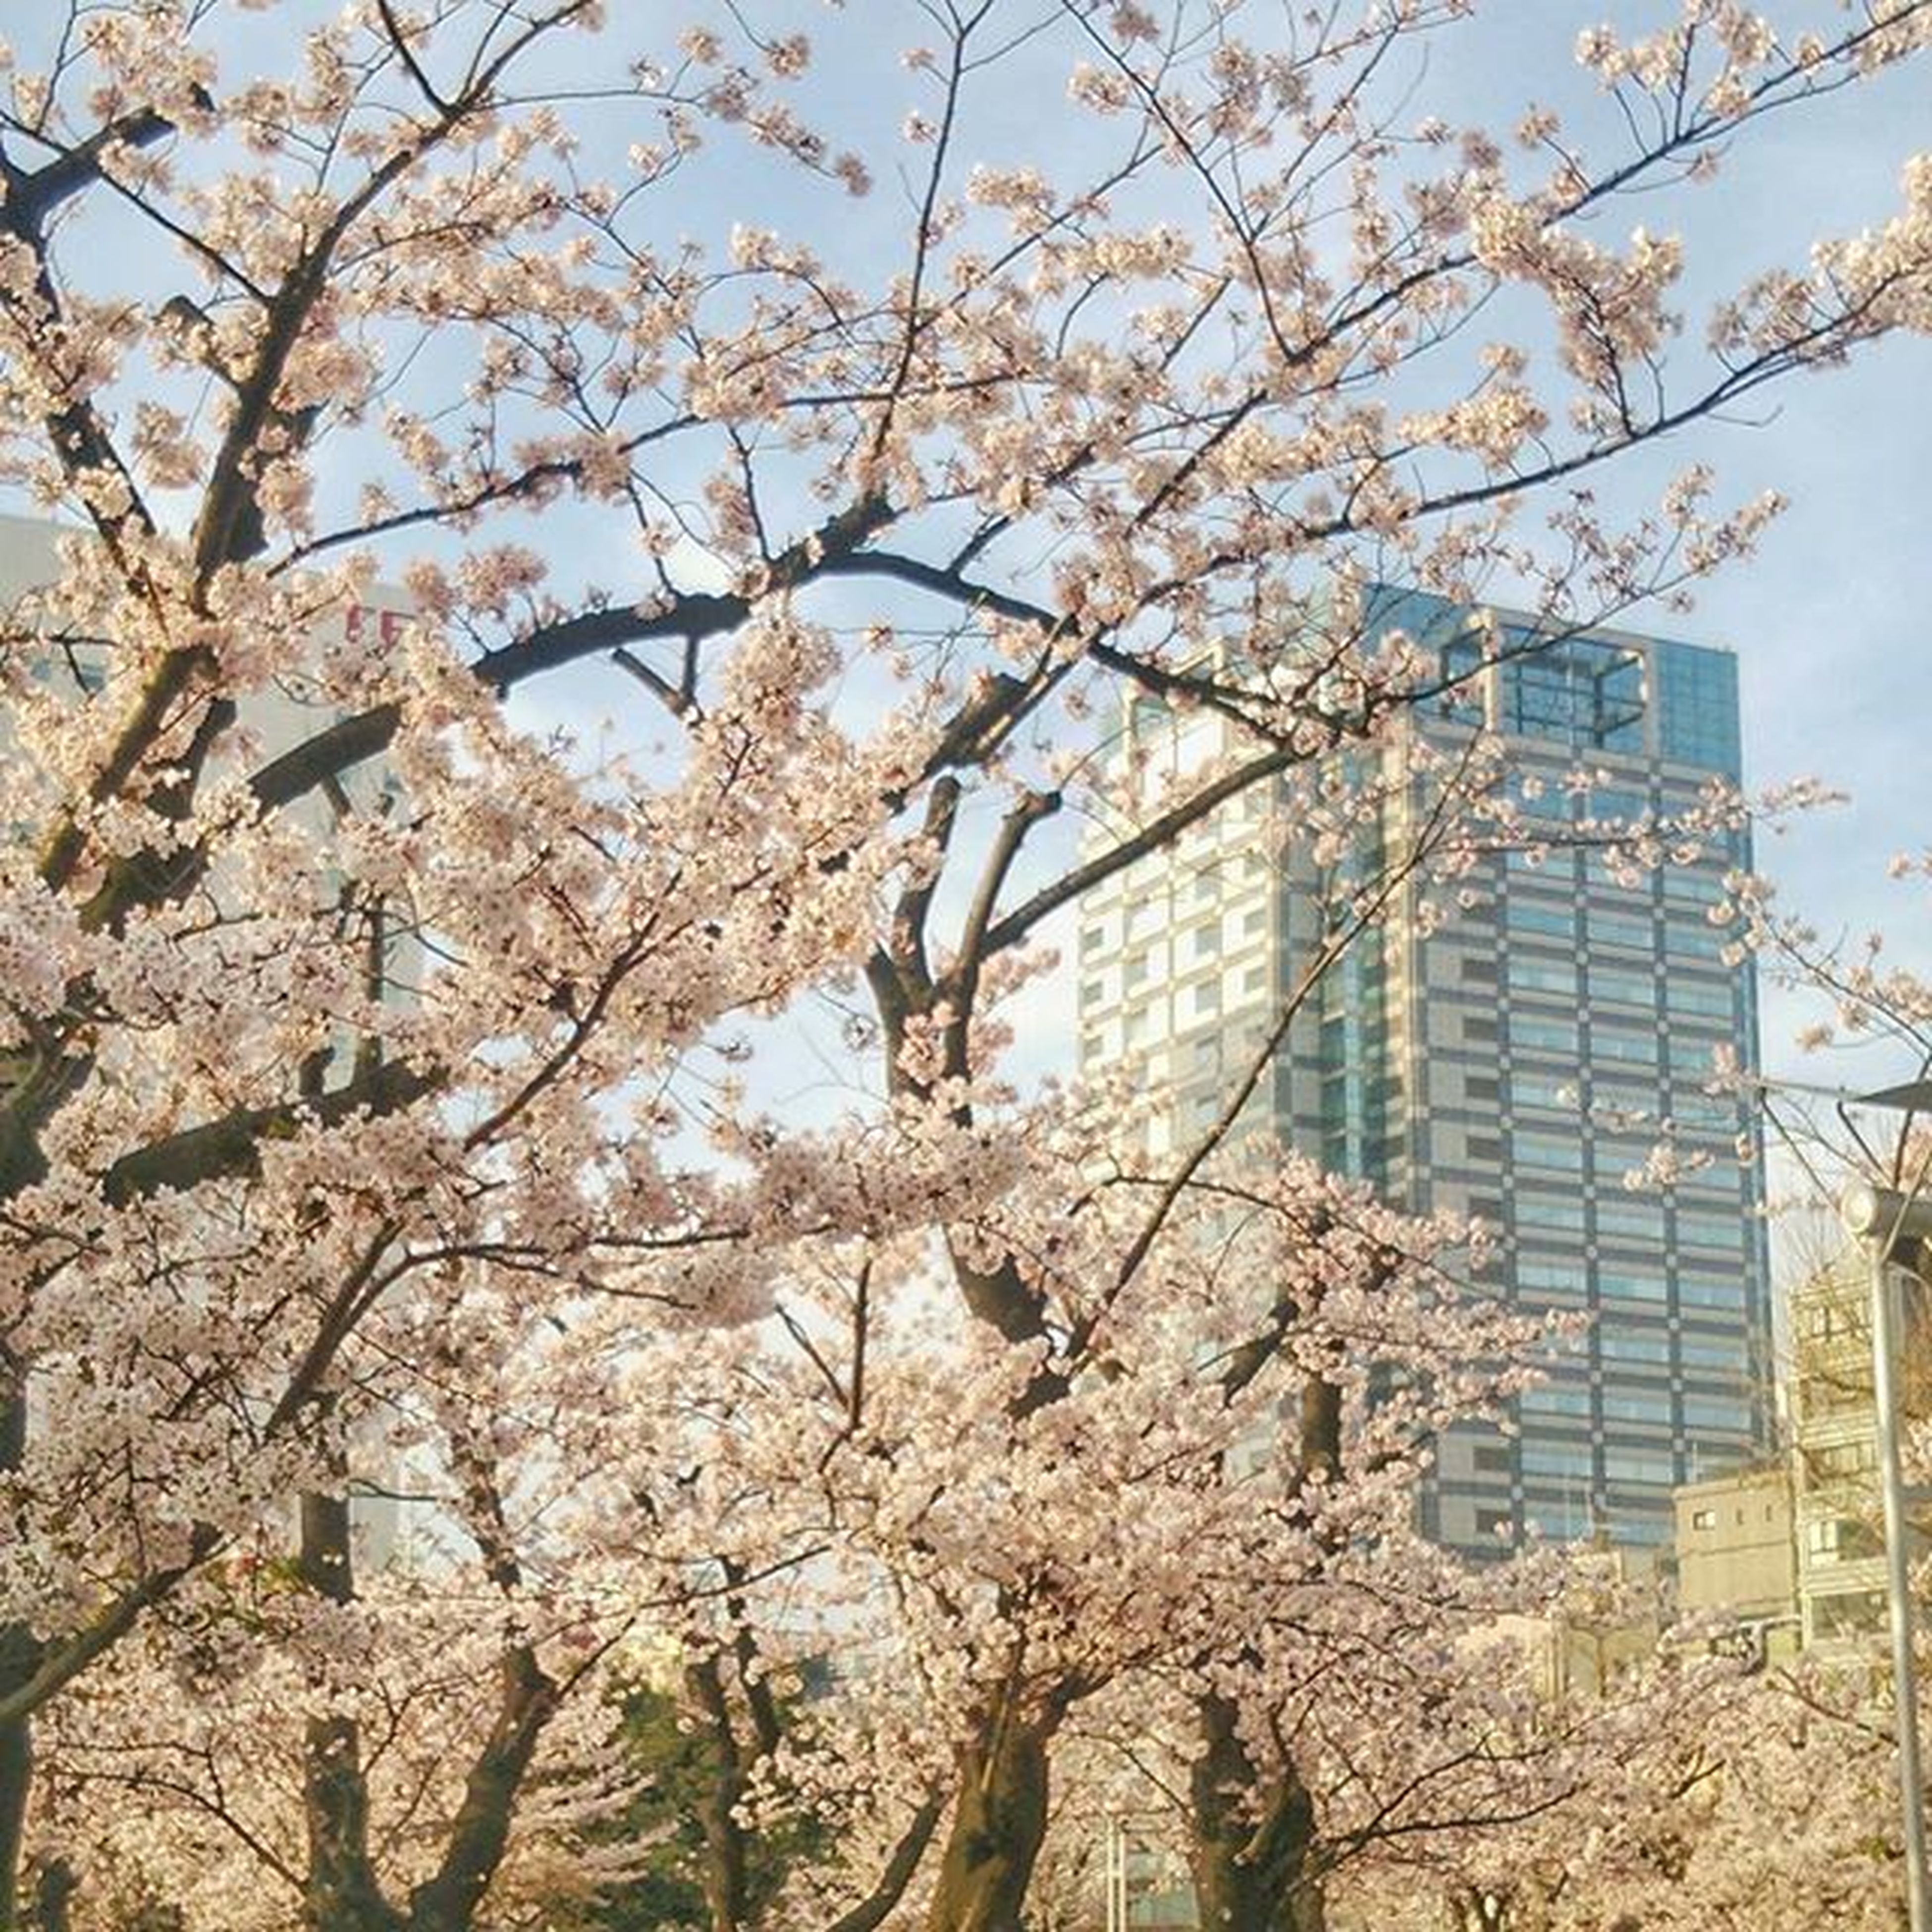 flower, tree, branch, building exterior, architecture, built structure, low angle view, cherry blossom, growth, freshness, blossom, fragility, cherry tree, city, nature, in bloom, springtime, sky, day, white color